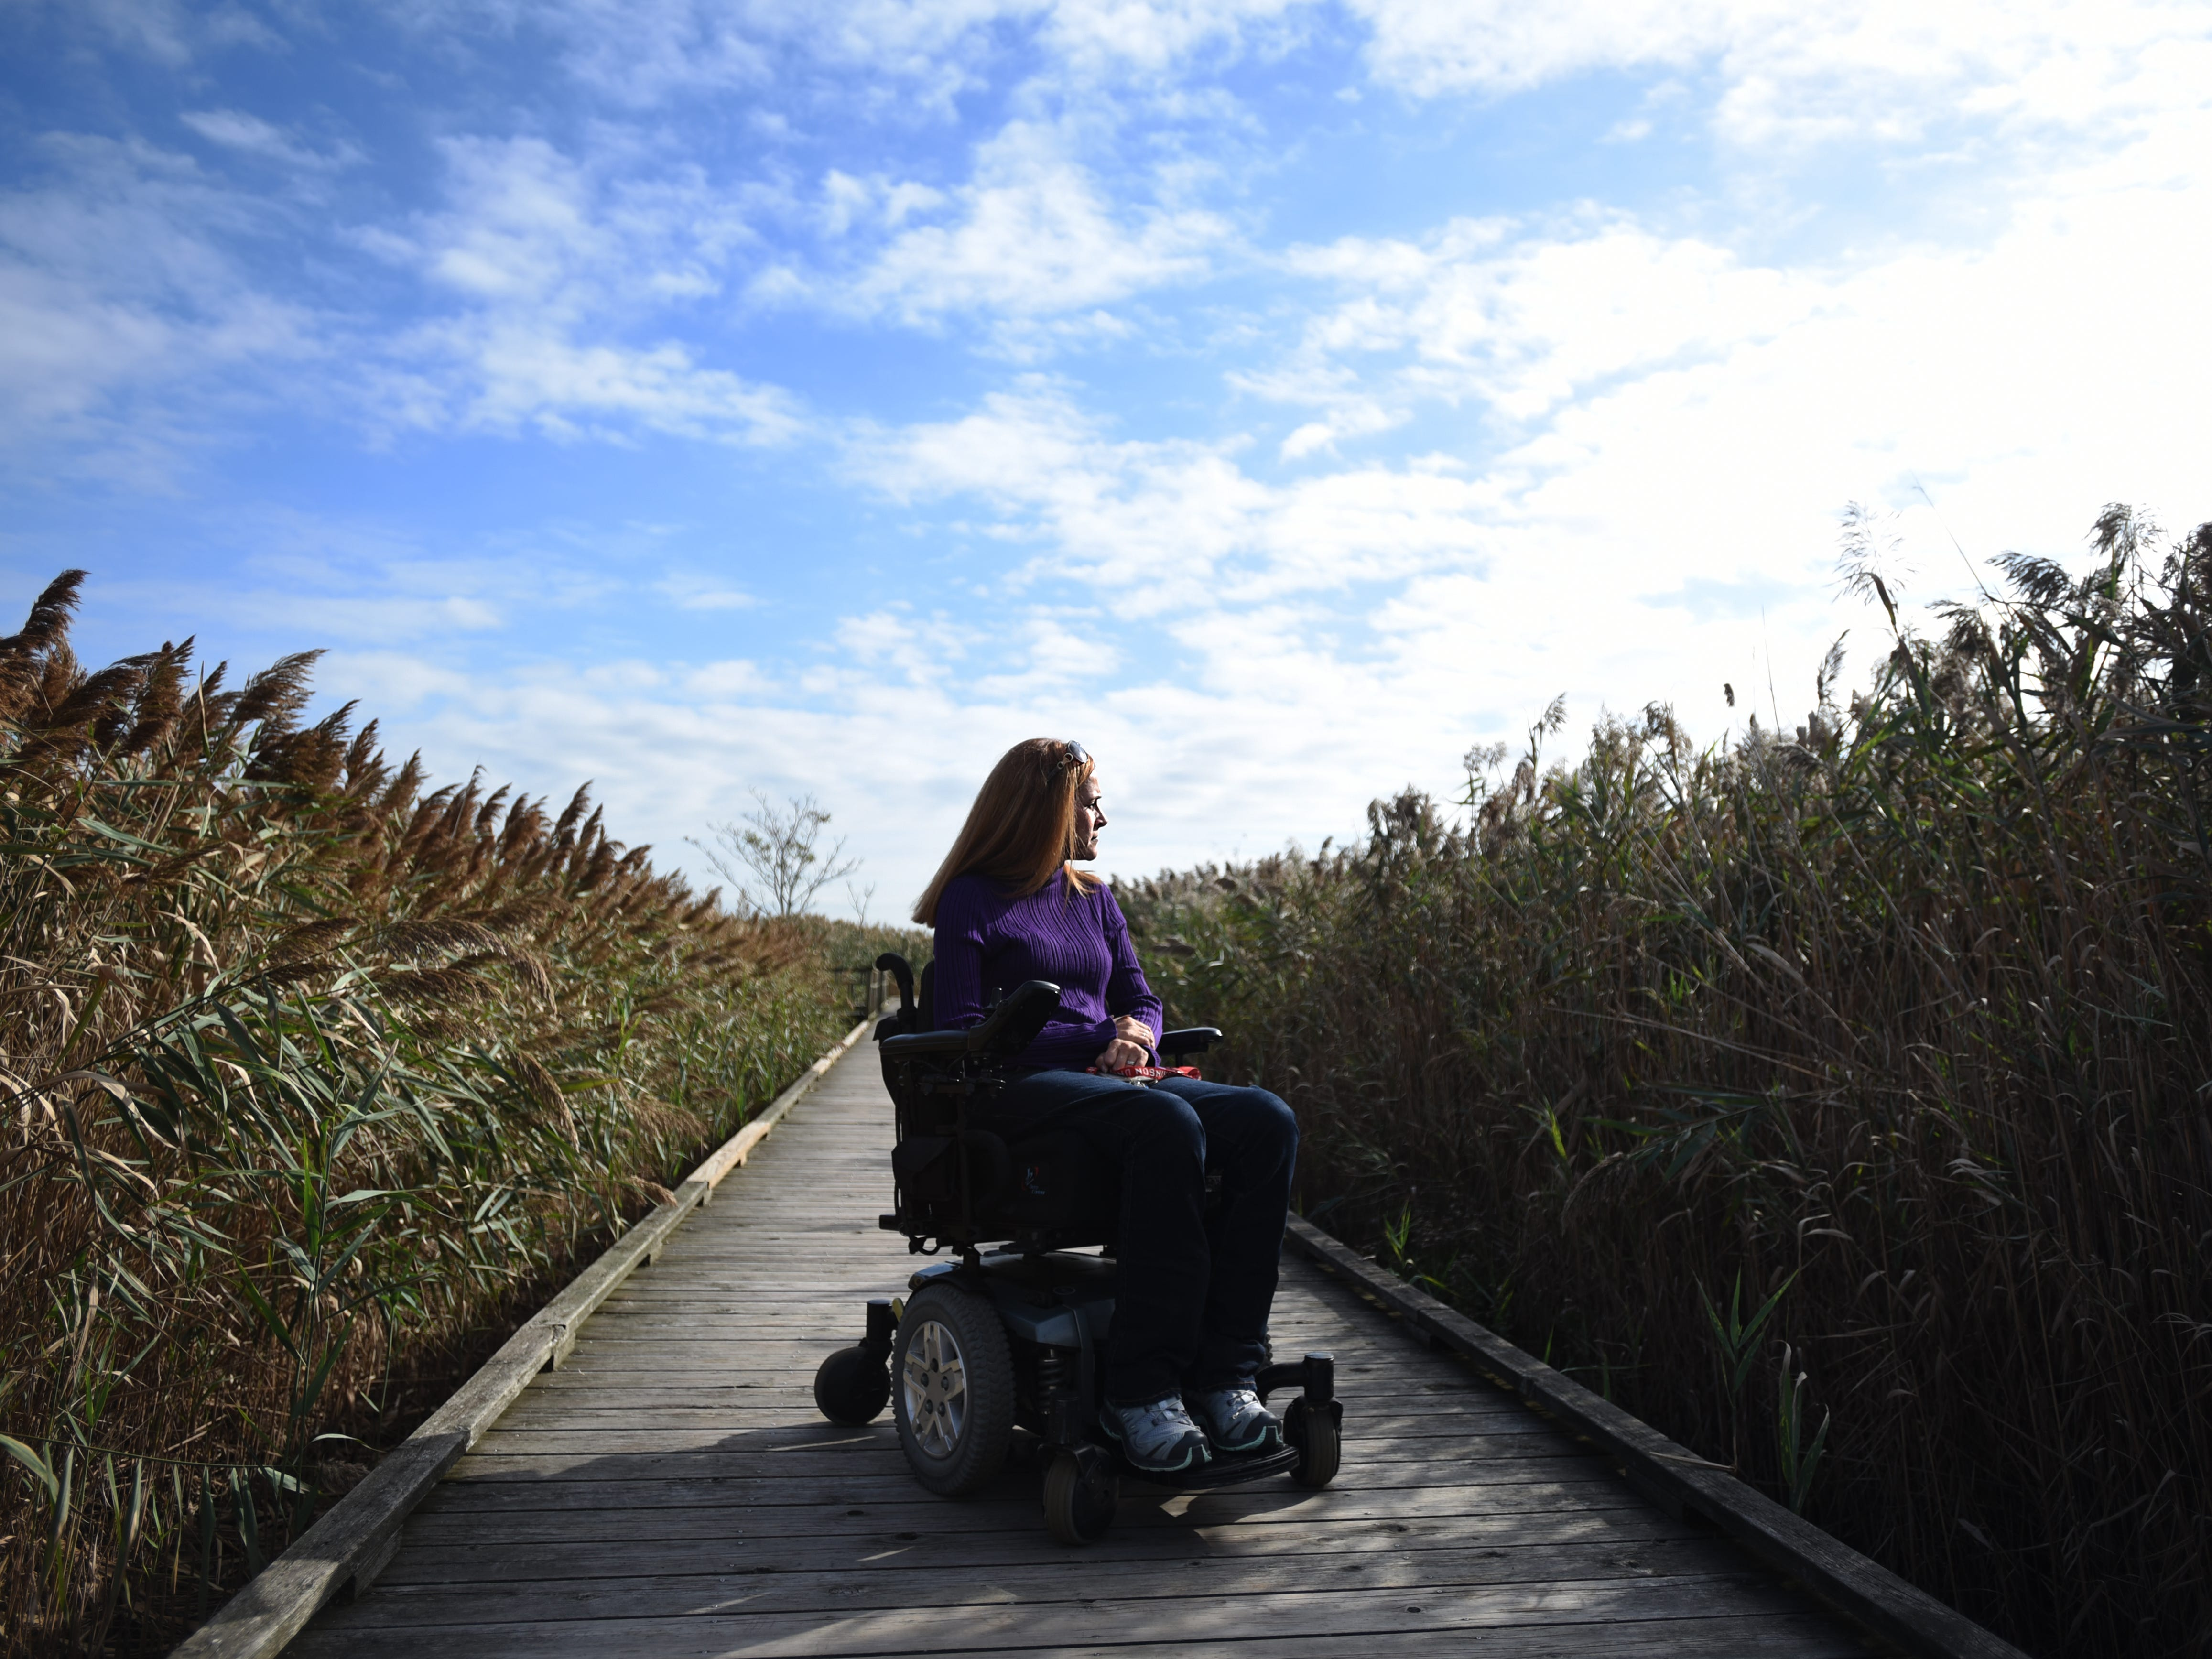 Michele Daly, Director of Disability Education at Meadowlands Environment Center and Ramapo College, on one of the accessible trails at DeKorte Park. New Jersey's hiking options for those with limited mobility, includes DeKorte Park and its accessible trails in Lyndhurst shown on Friday October 5, 2018.